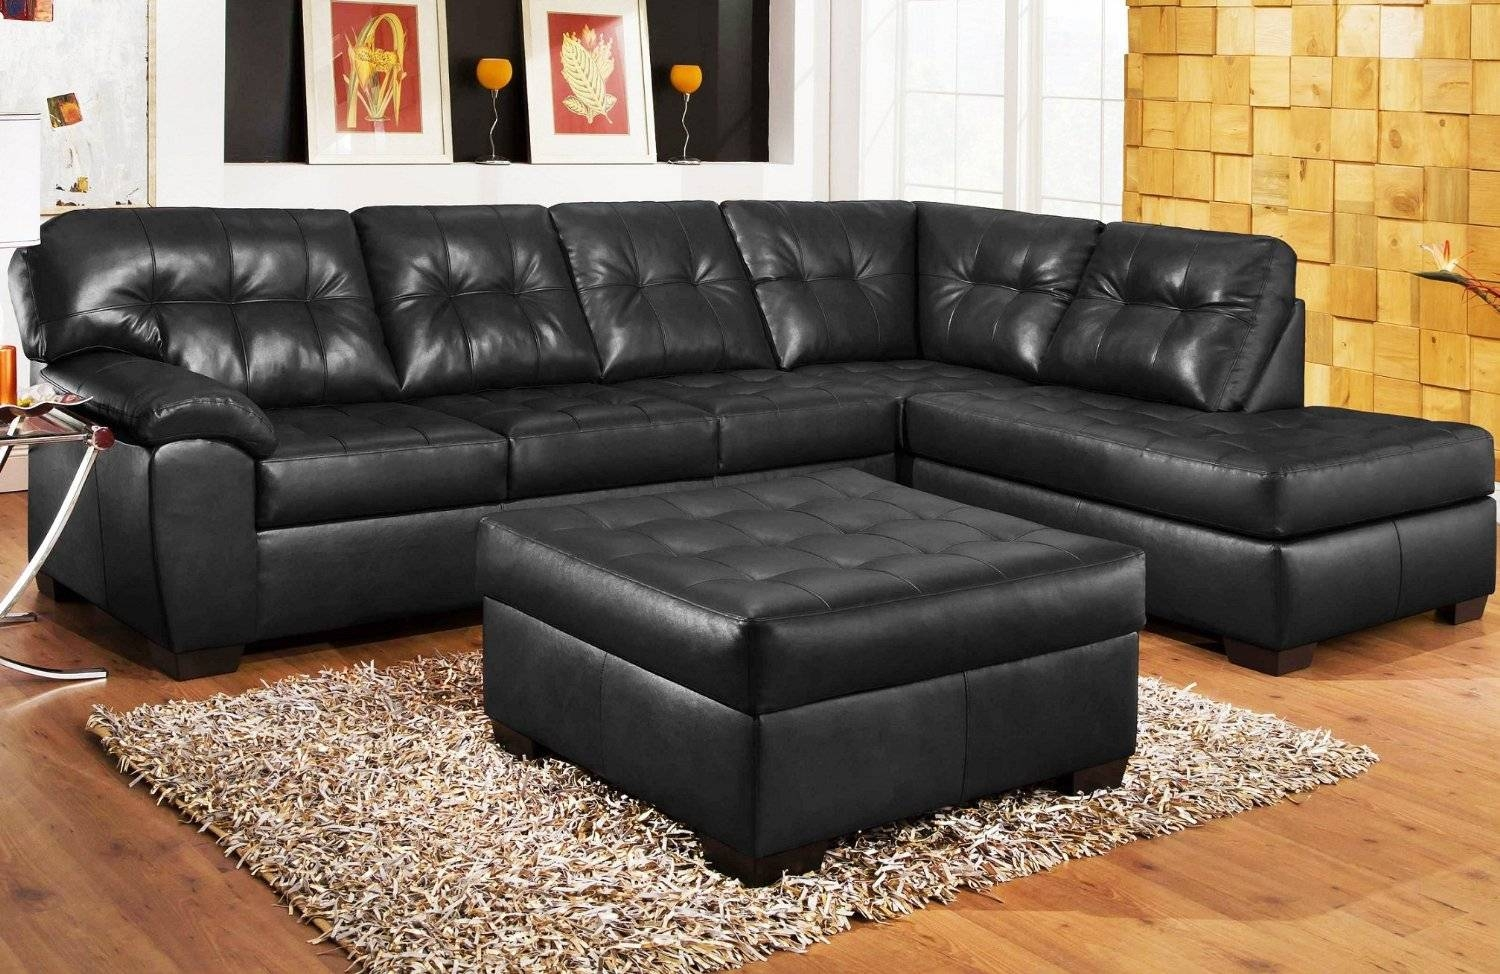 Decor: Rooms To Go Cindy Crawford For Classy Living Room Design Pertaining To Cindy Crawford Leather Sectional Sofas (View 1 of 15)